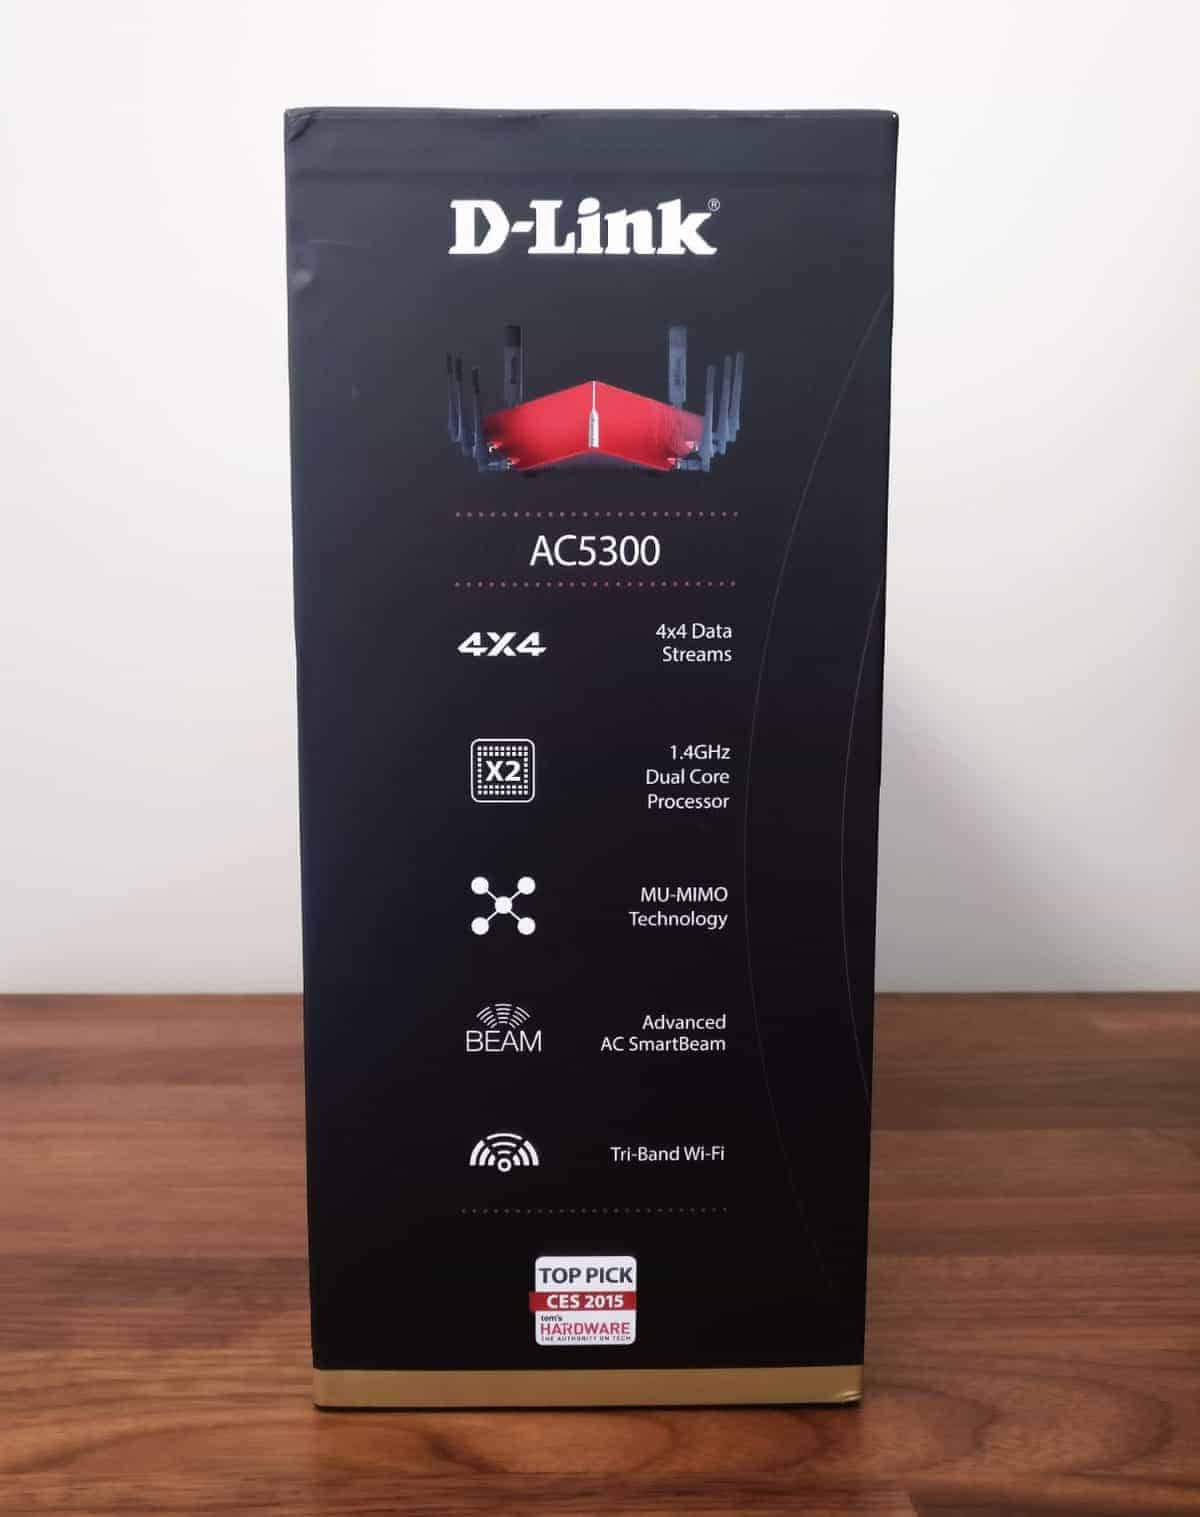 dlink-router-photos-24 D-Link DIR-895L AC5300 MU-MIMO Wi-Fi Router Review